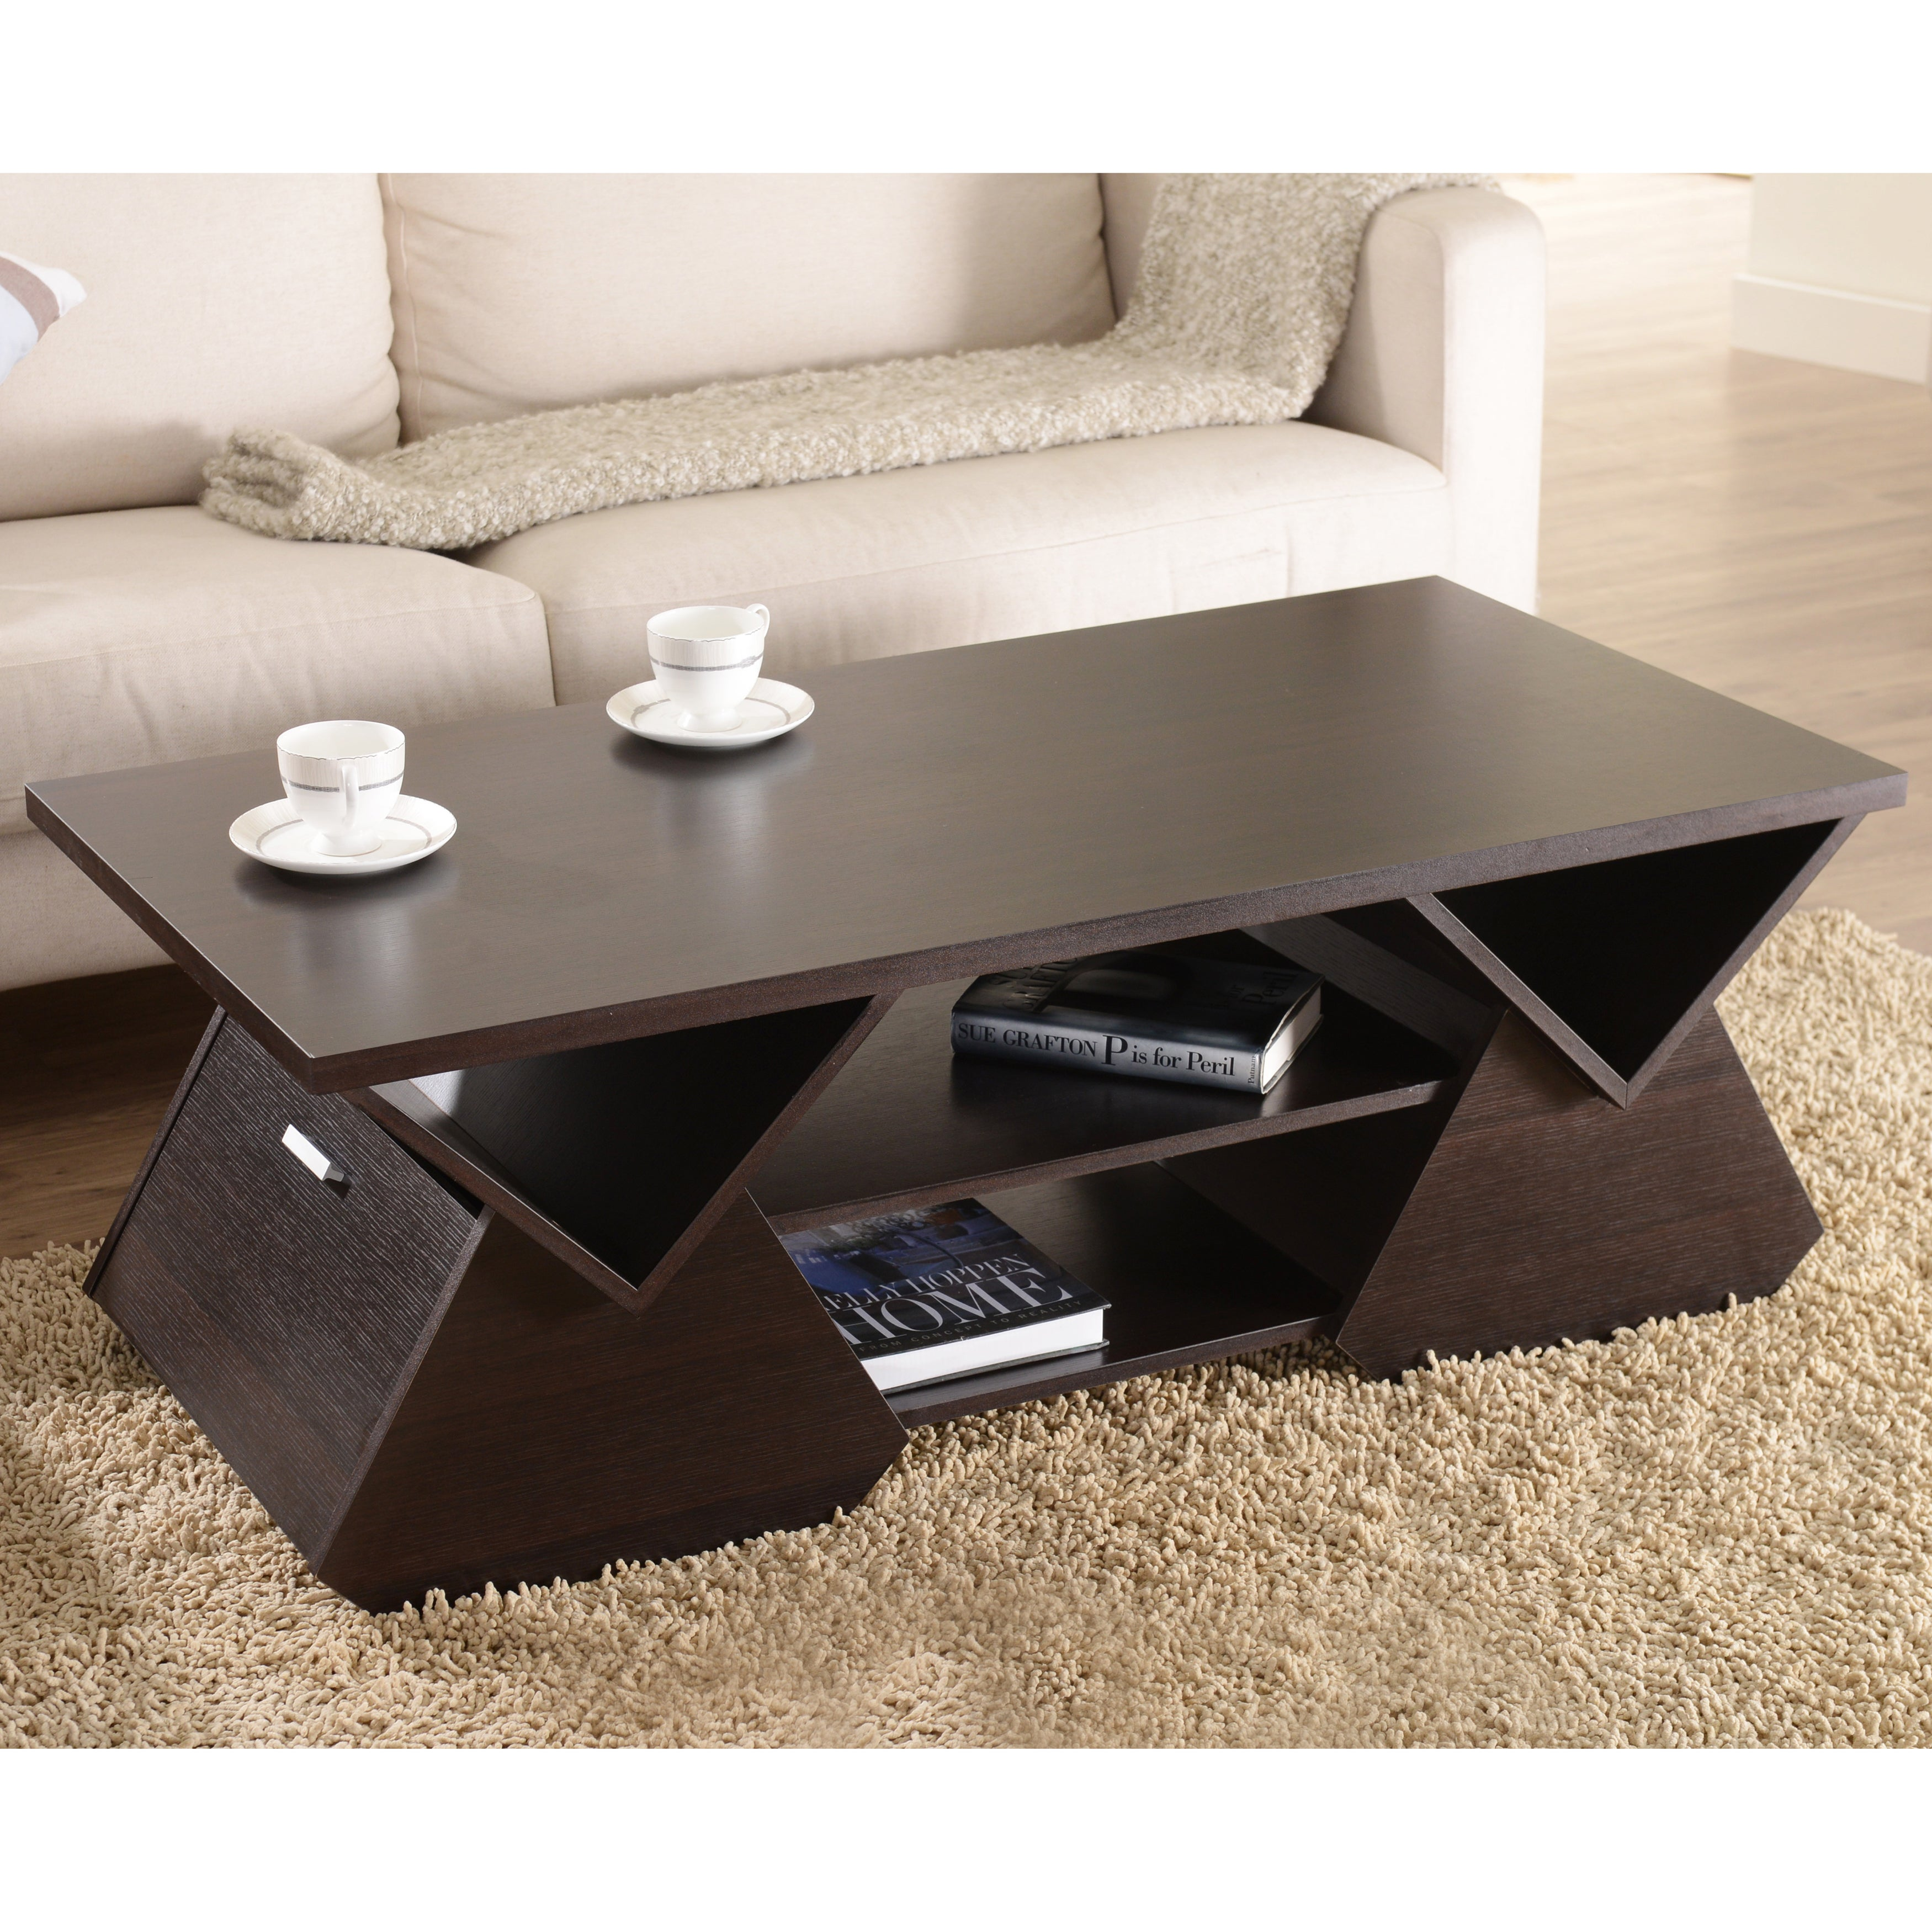 Shop furniture of america melika espresso geometric coffee table on sale free shipping today overstock com 9172913